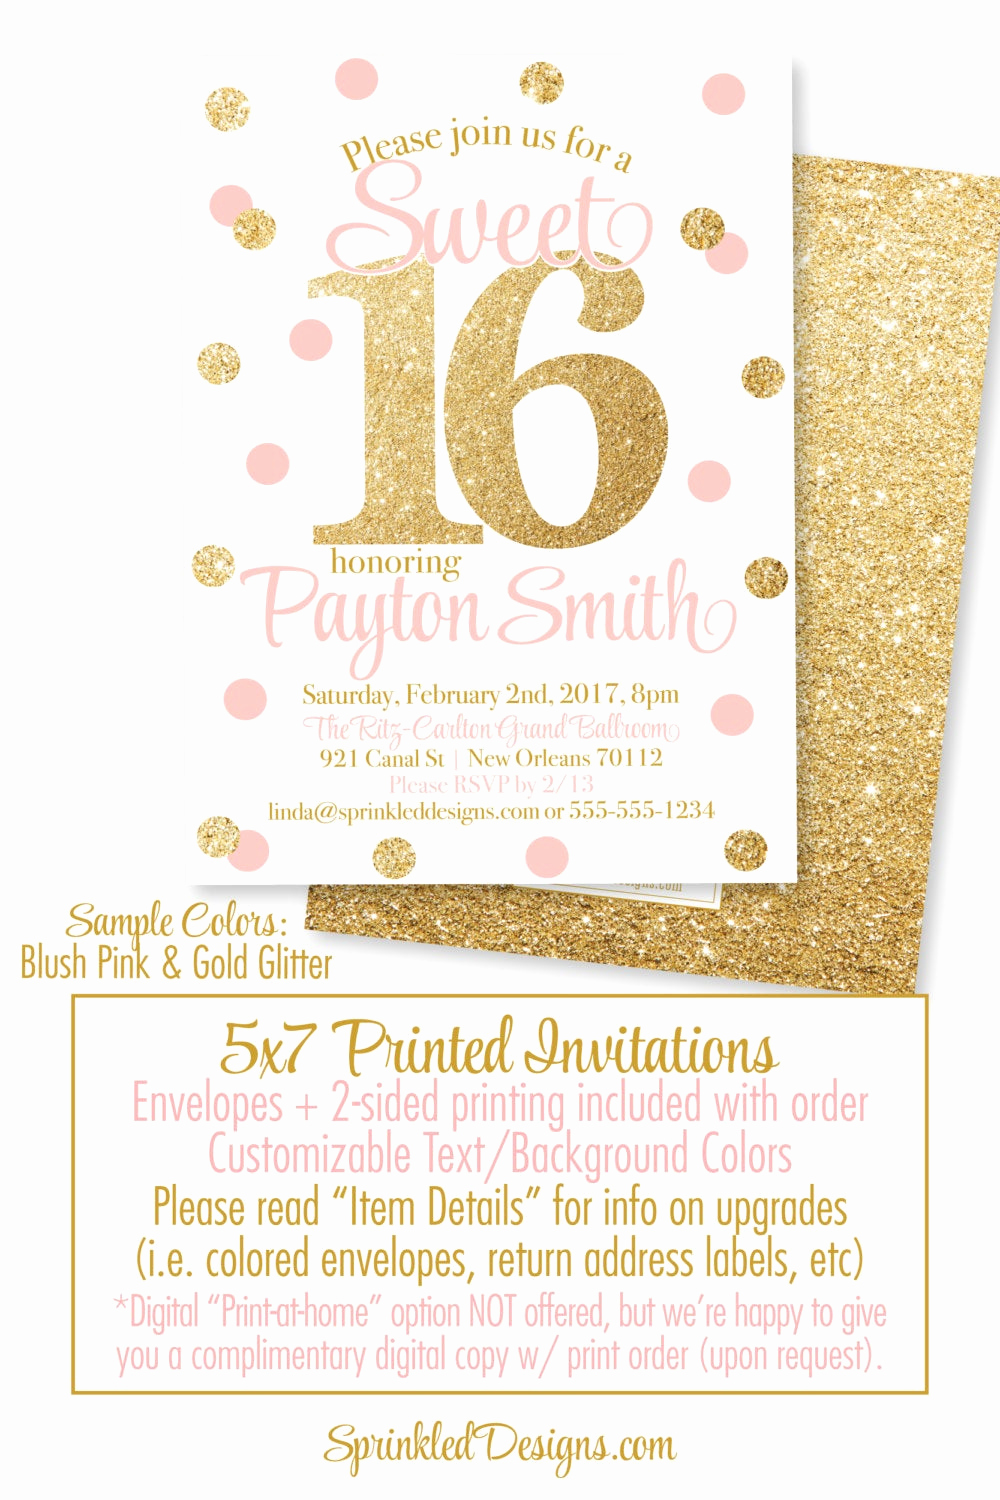 Sweet 16 Invitation Cards New Sweet 16 Invitations Pink and Gold Glitter Sweet Sixteen